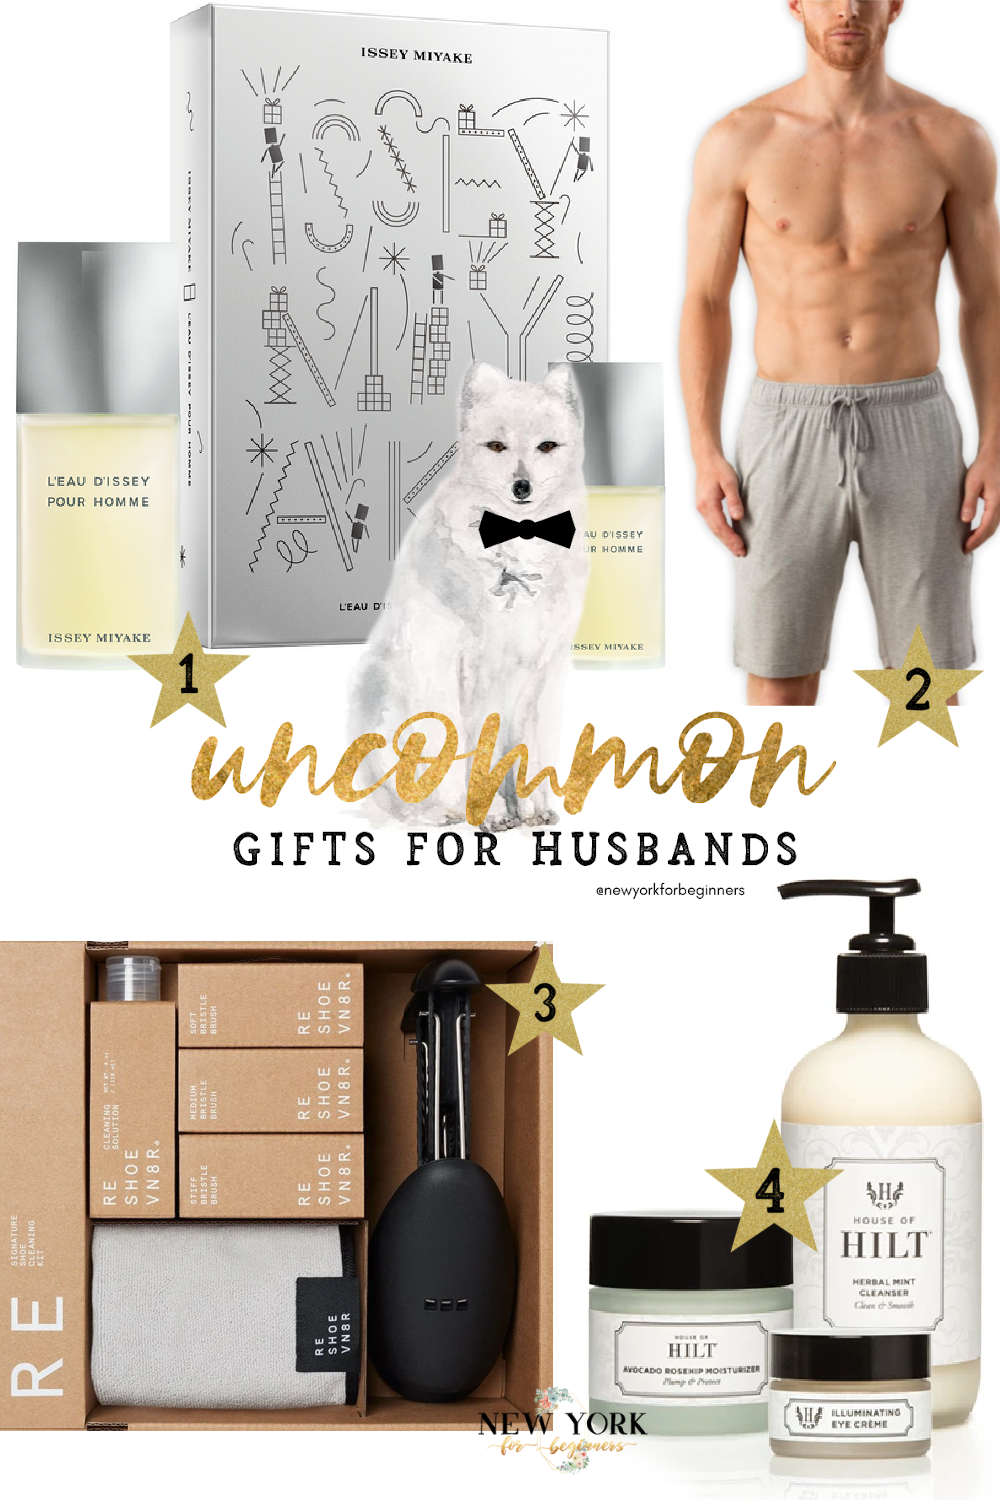 Uncommong gifts for husbands